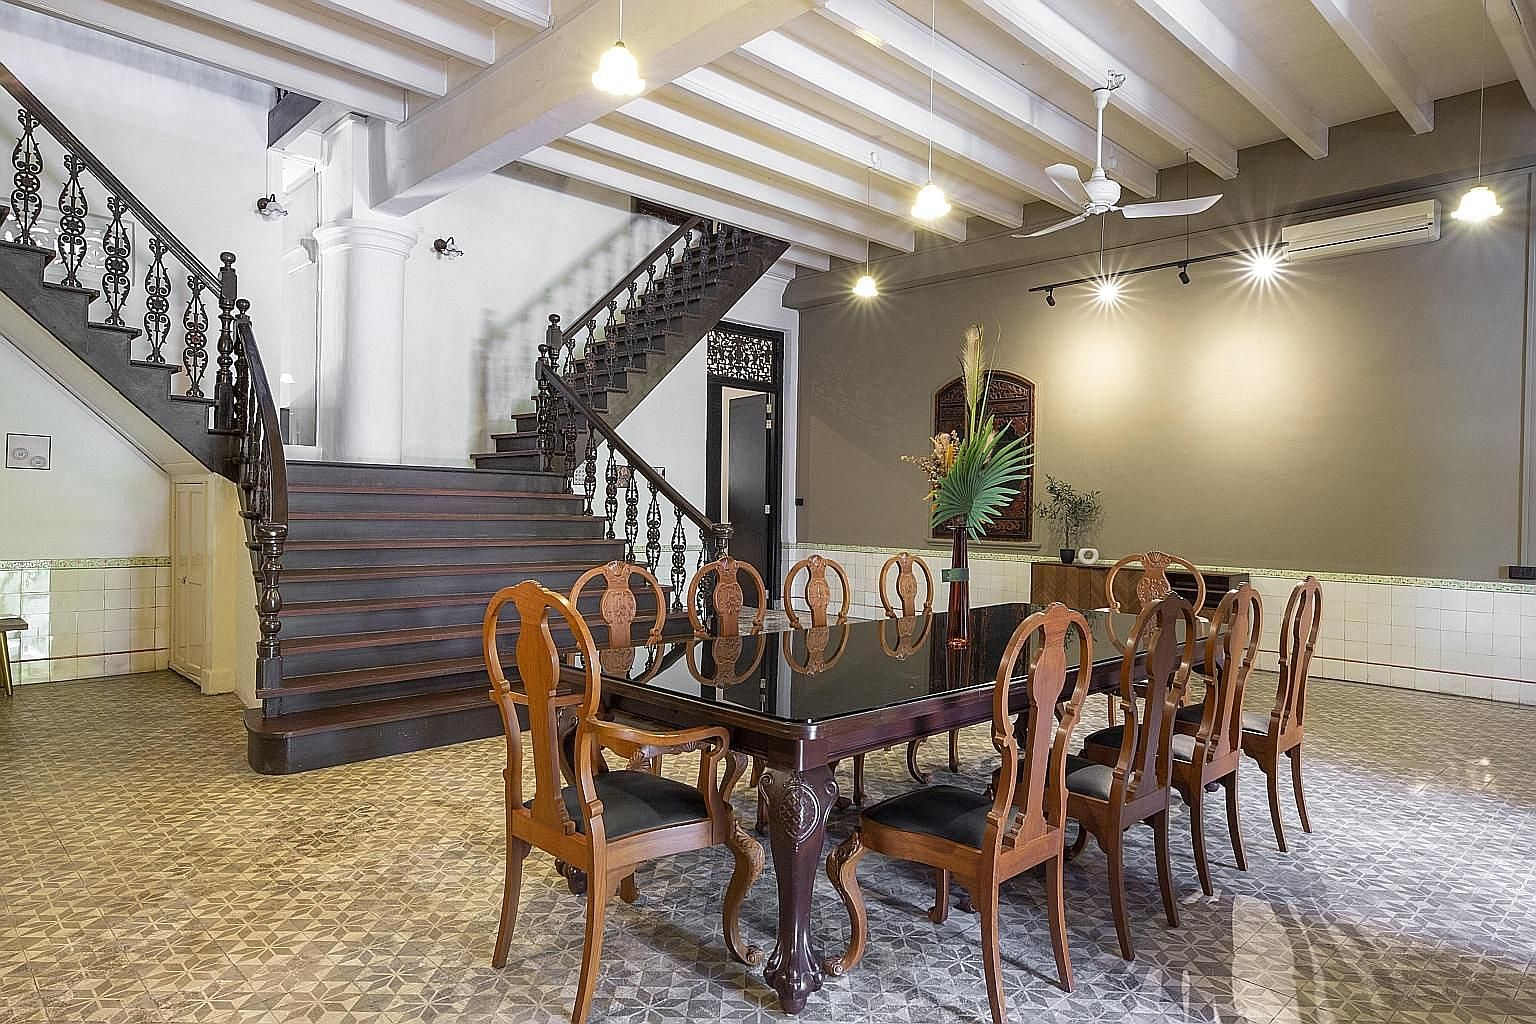 Dining lounge at Emerald Hill in clear view of the grand staircase. The interior and accents reflect the neighbourhood's distinctive Peranakan history.